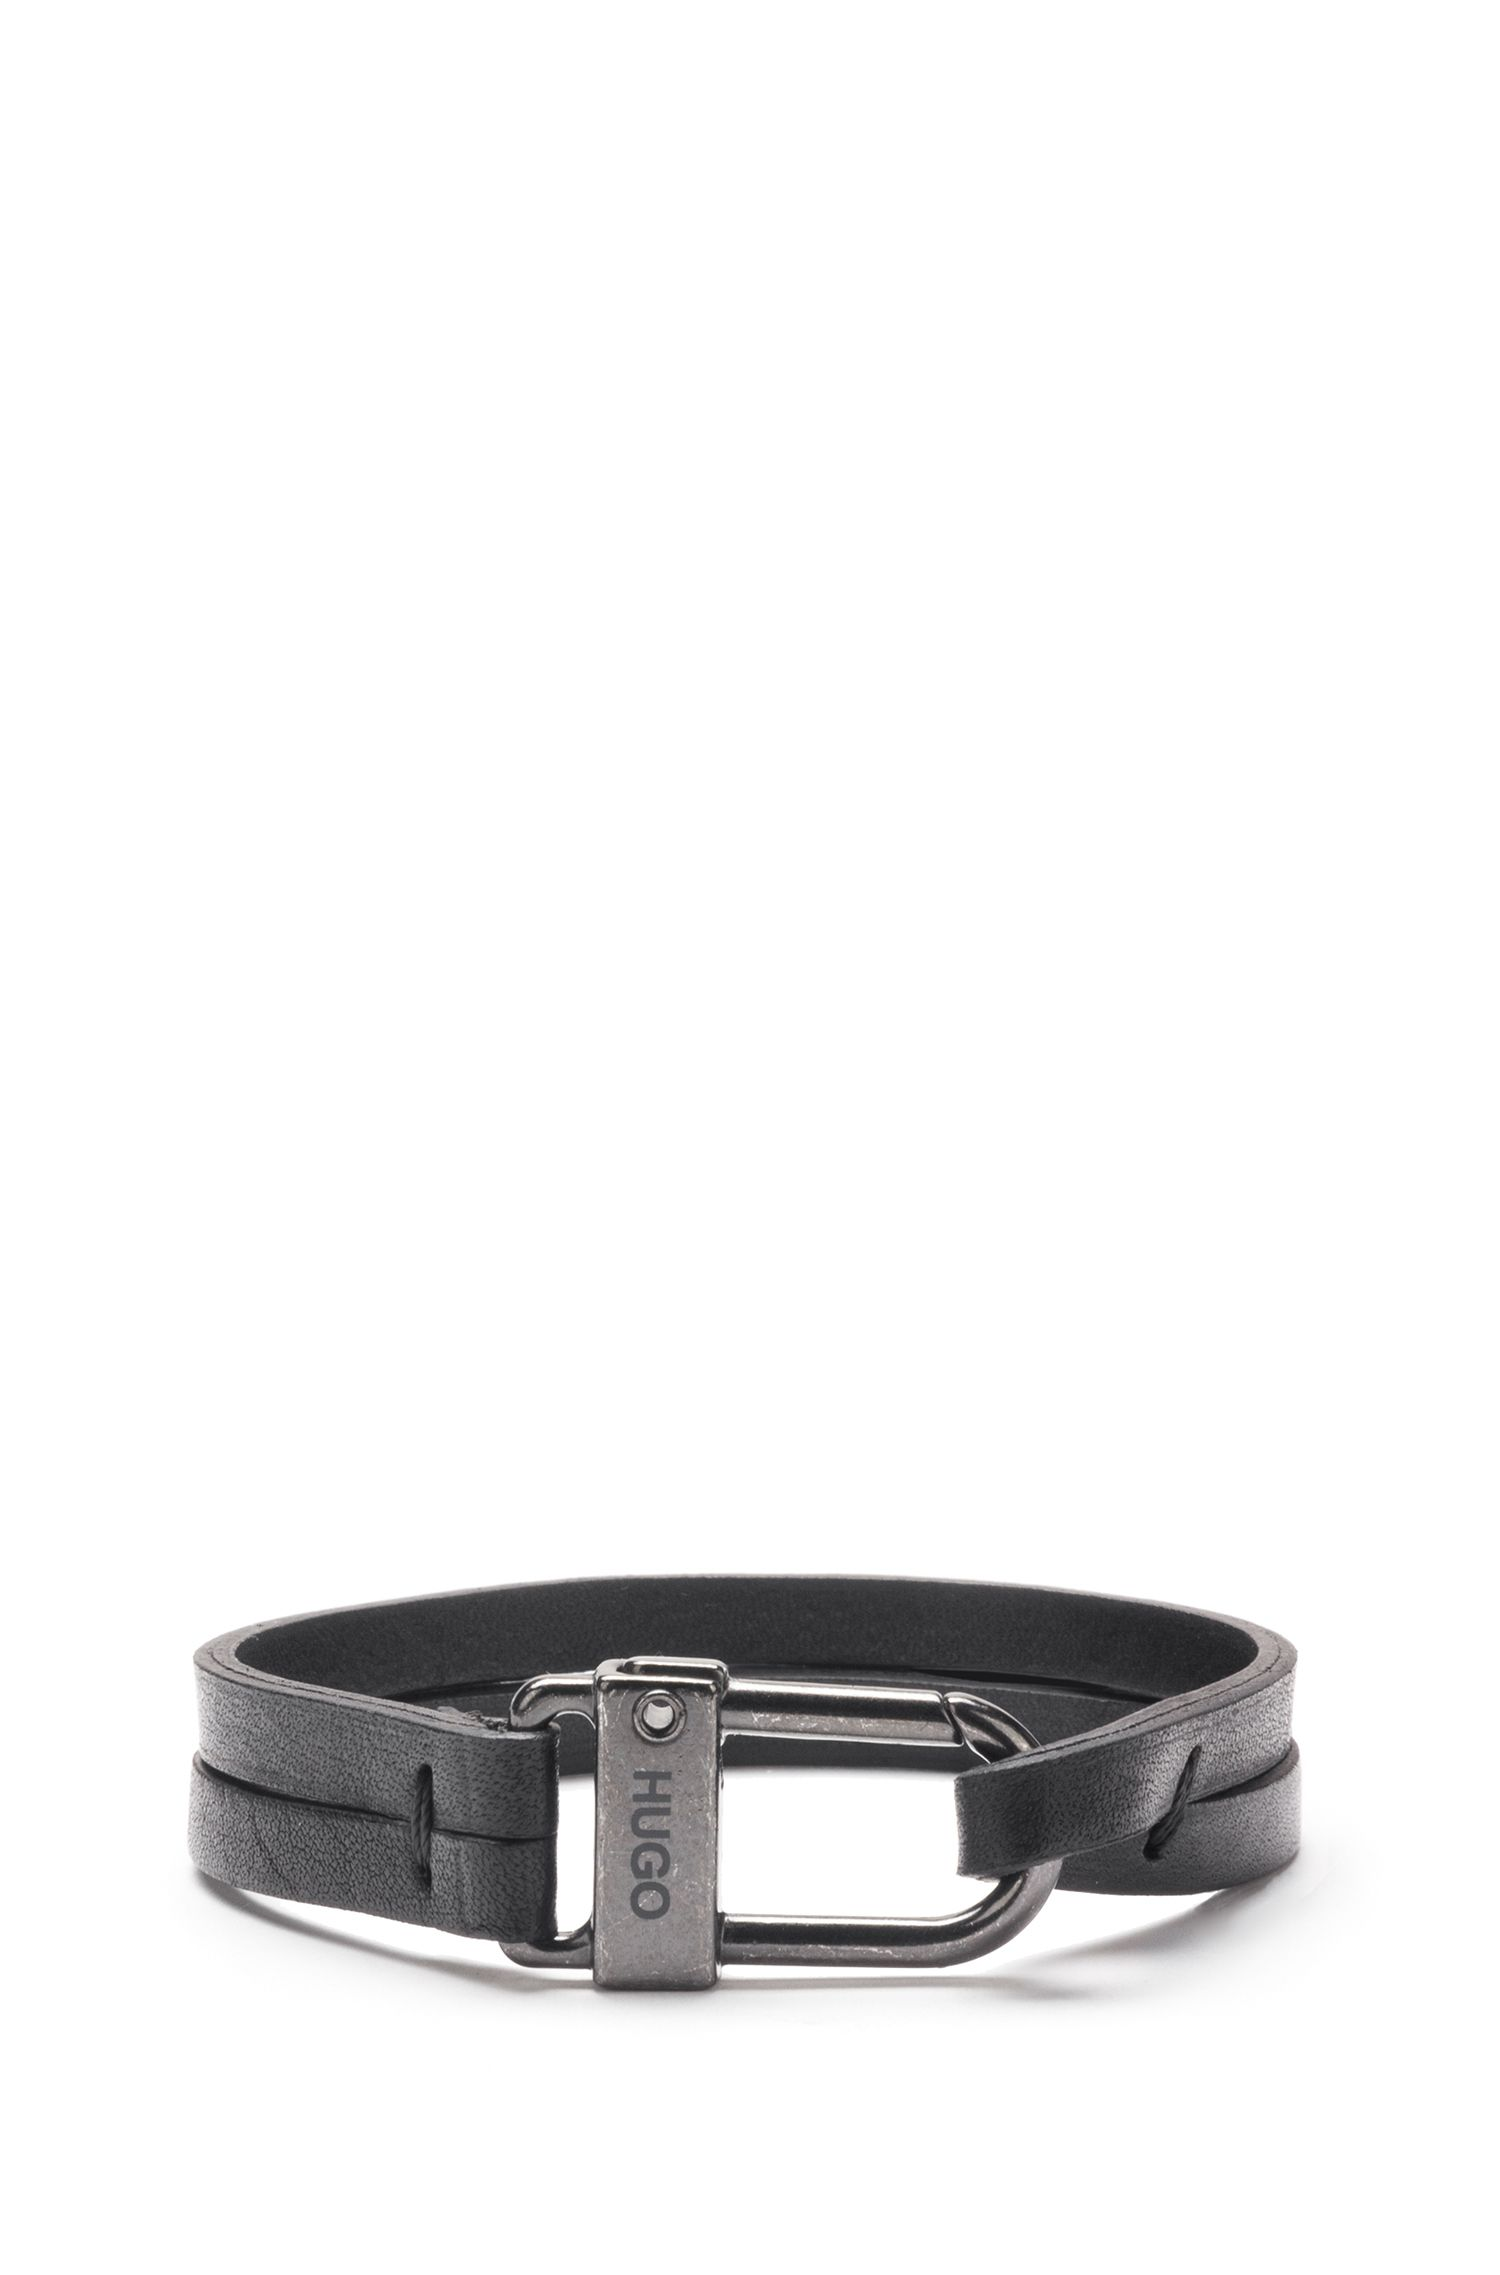 Italian-leather bracelet with carabiner closure